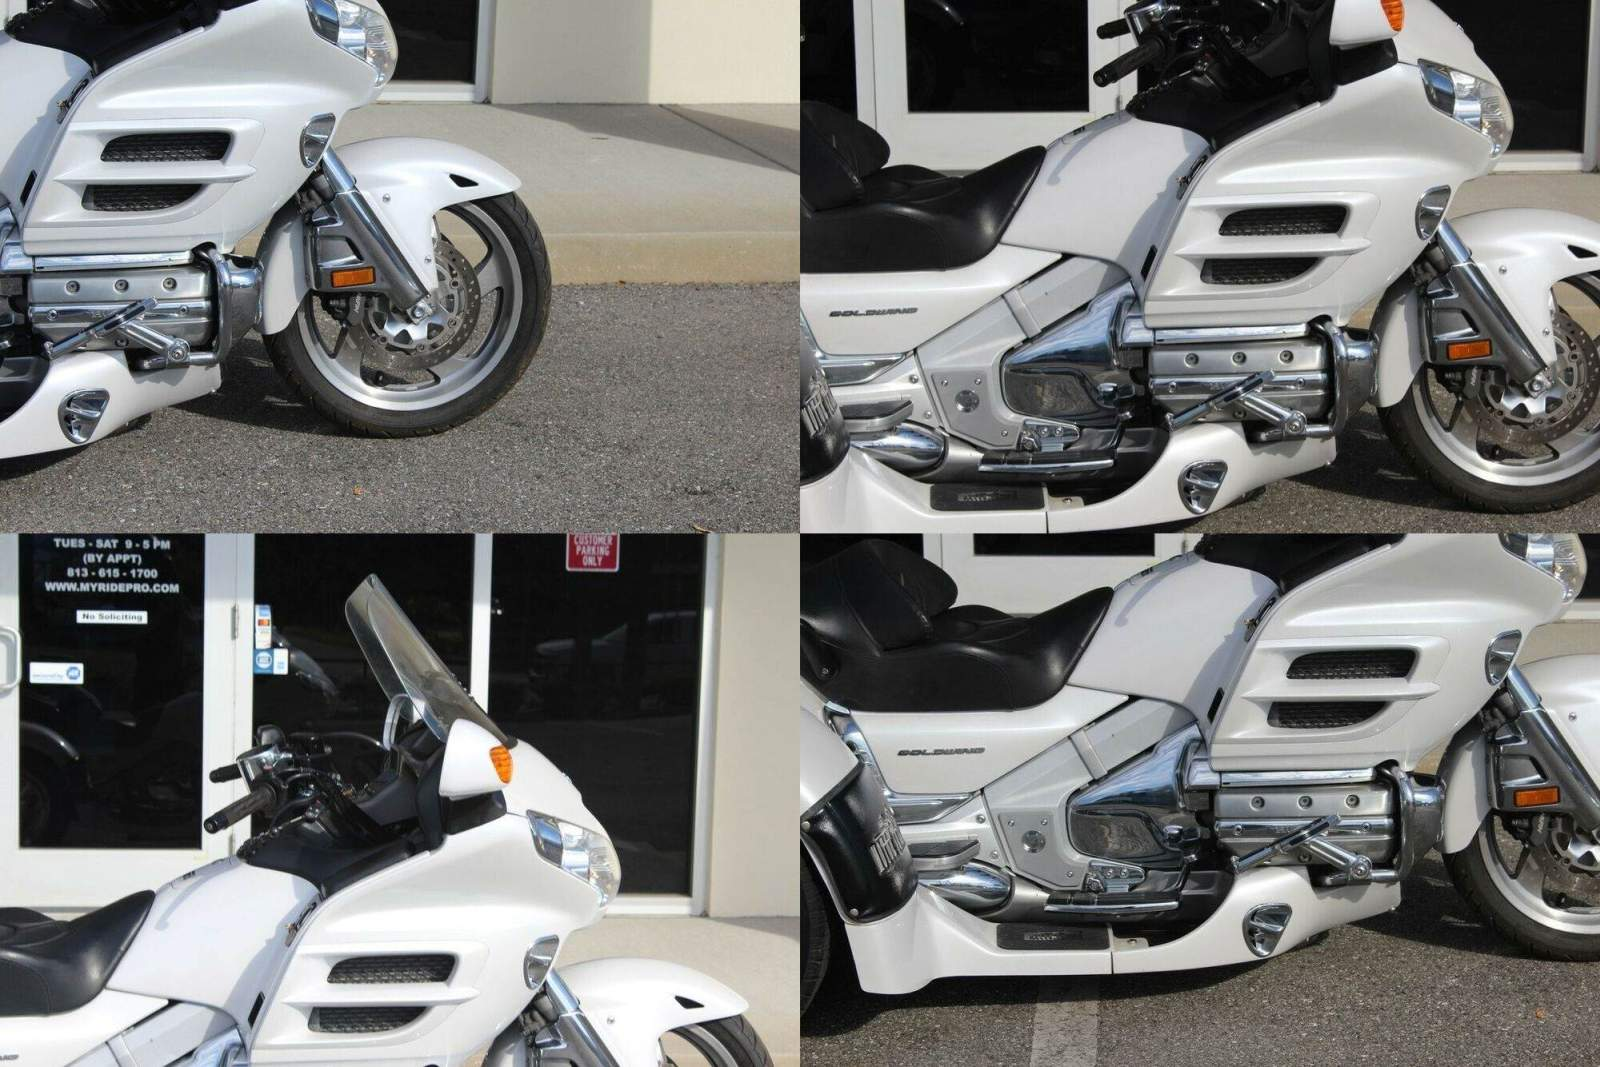 2008 Honda Gold Wing Premium Audio Pearl White used for sale